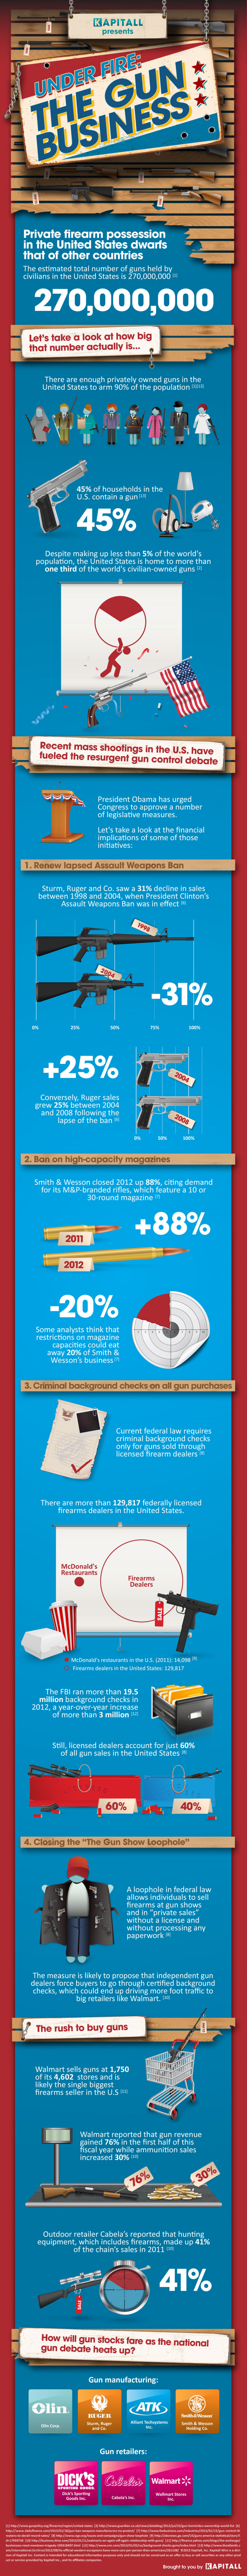 Under Fire: The Gun Business Infographic